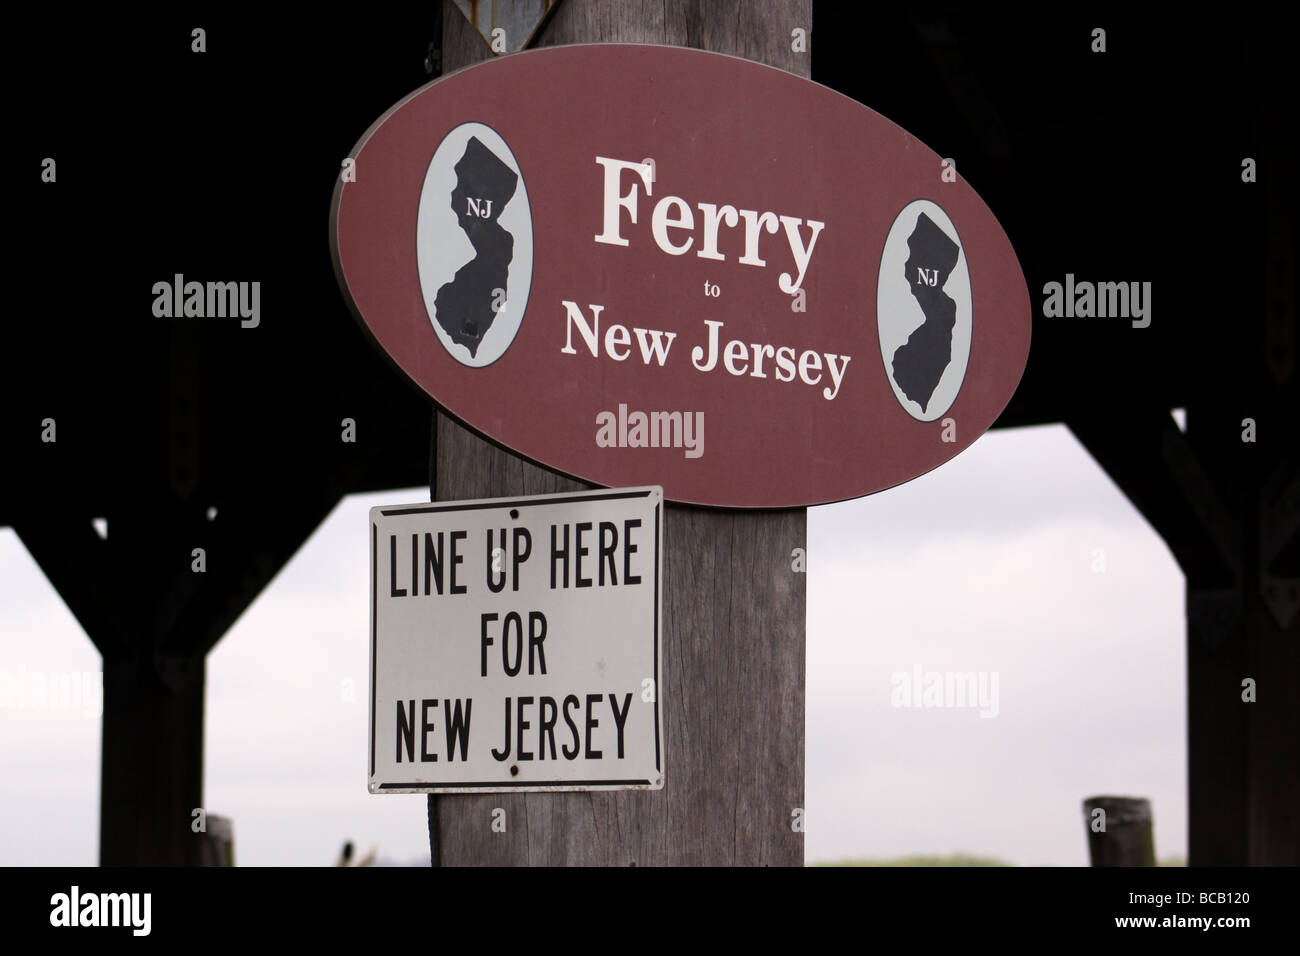 Signage at the Ferry Terminal on Ellis Island - Stock Image